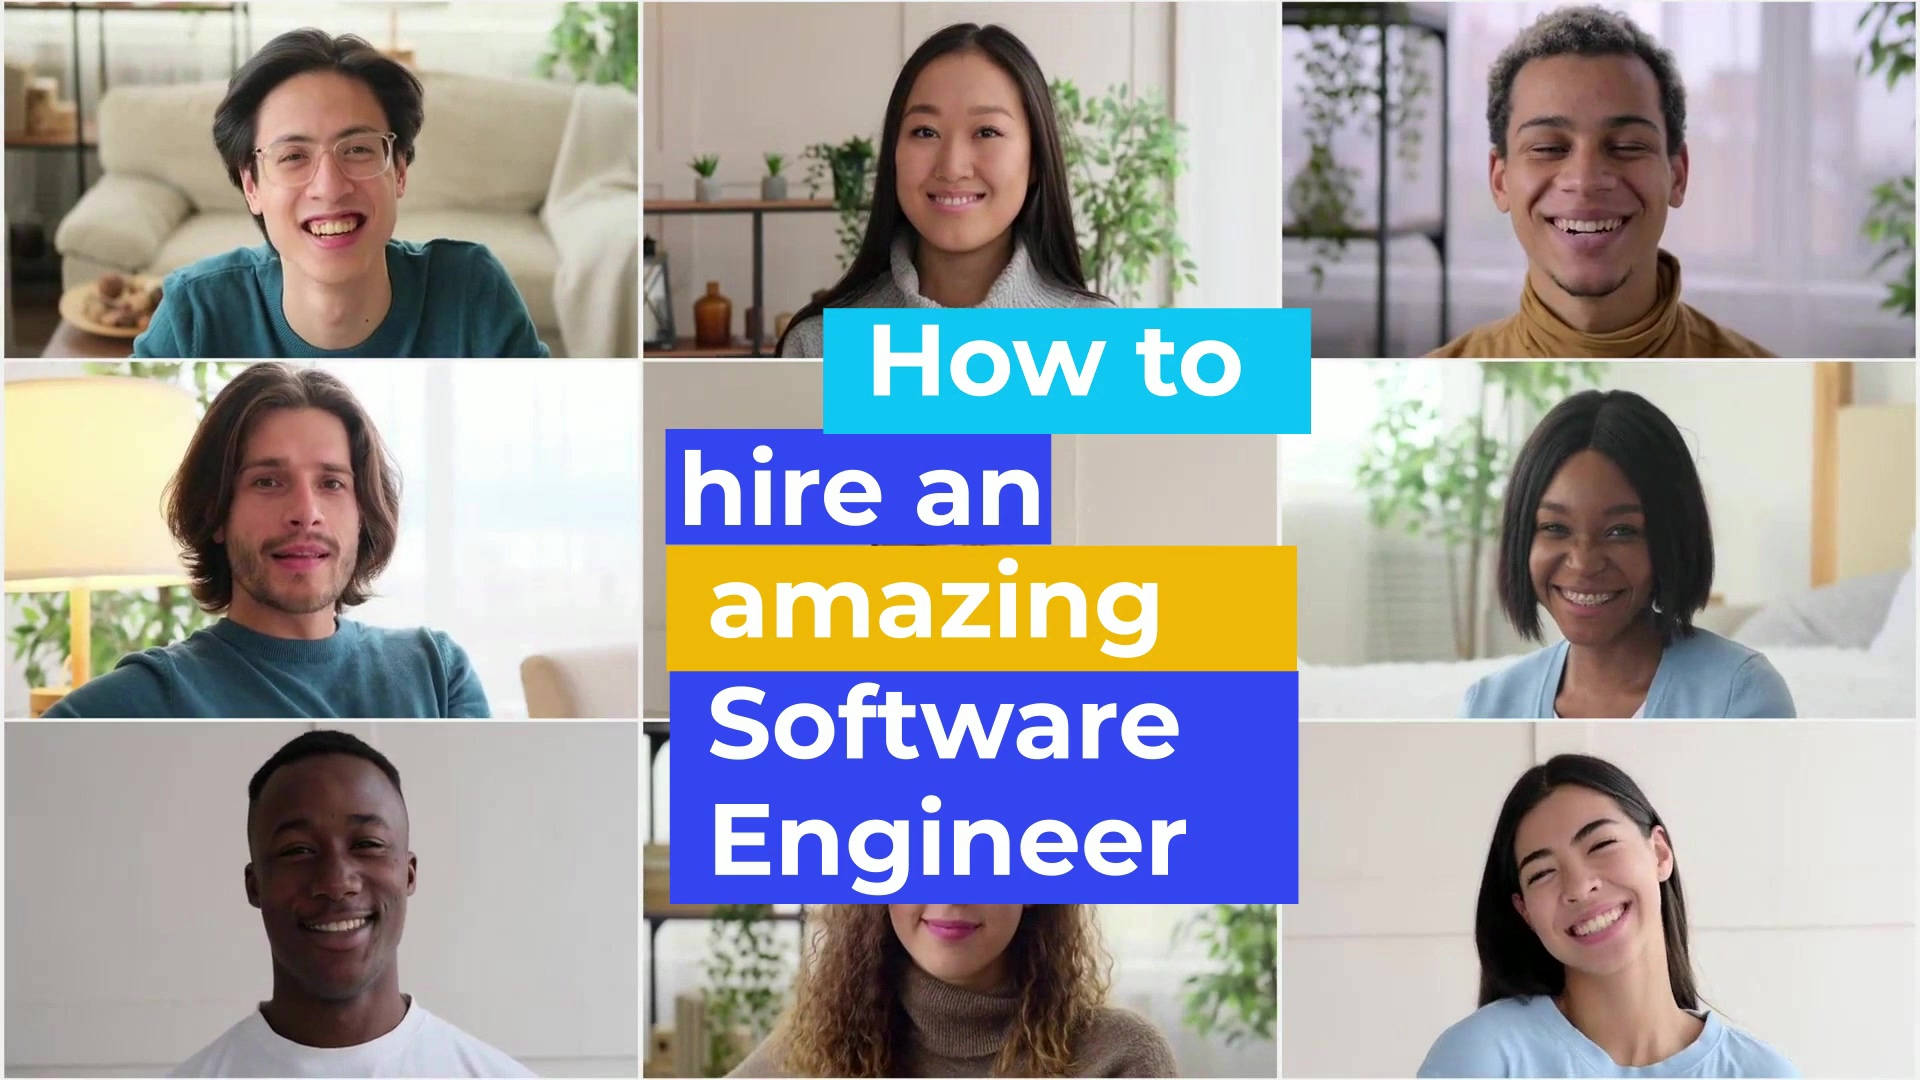 Quick Hiring Tips for Hiring A Software Engineer